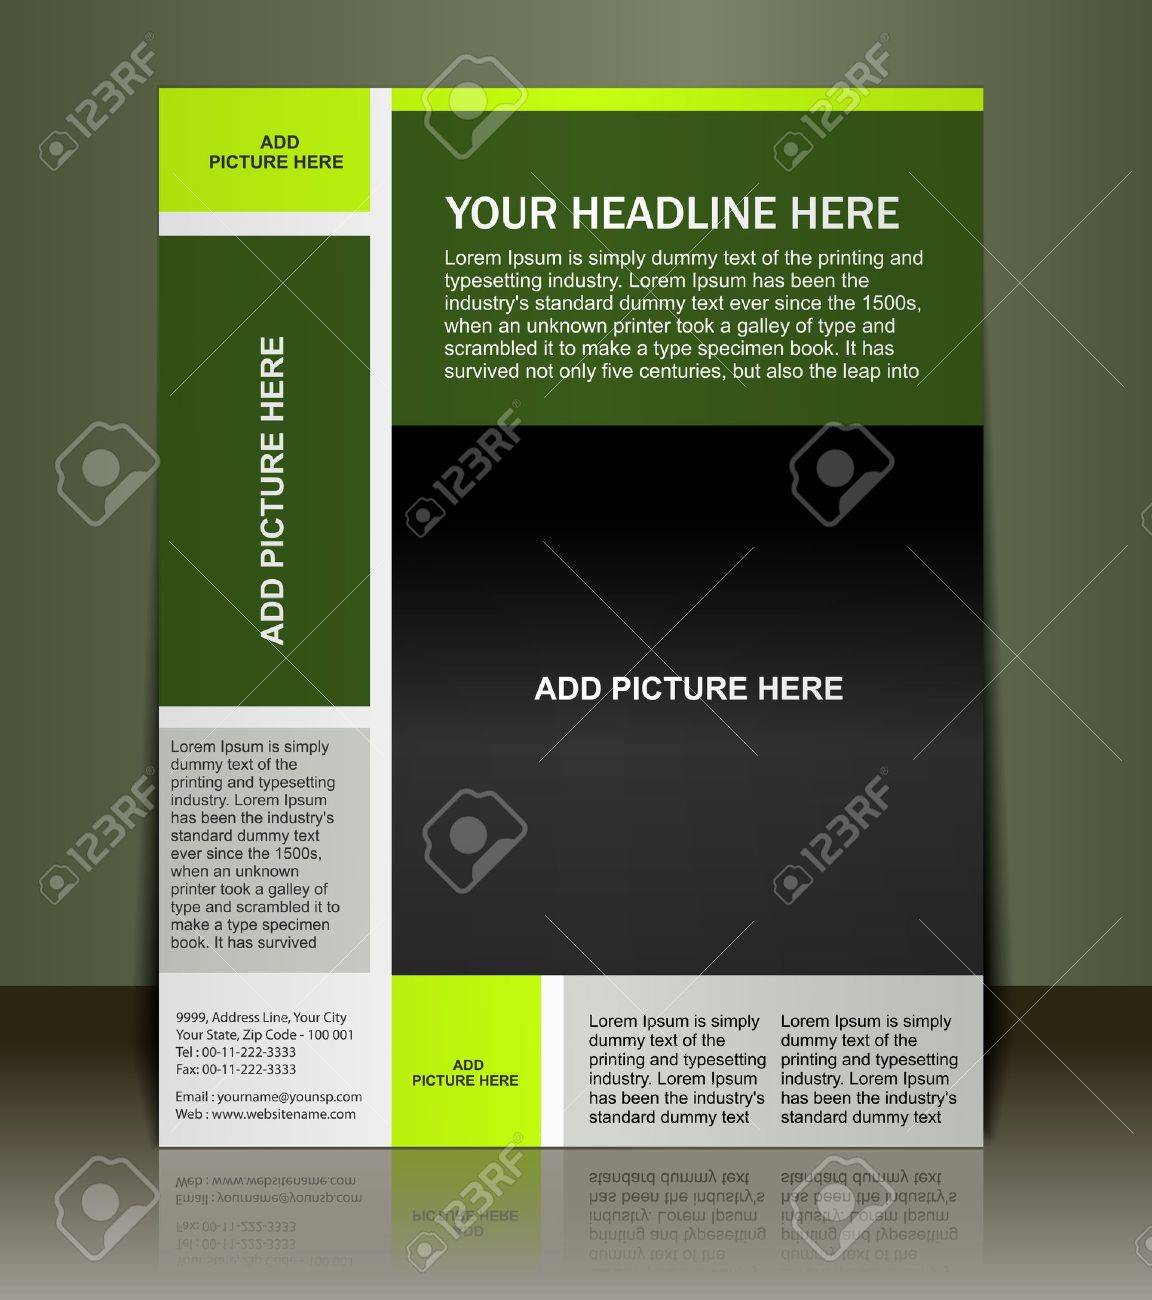 Vector editable Presentation of Flyer/Poster design content background. Stock Vector - 10054913